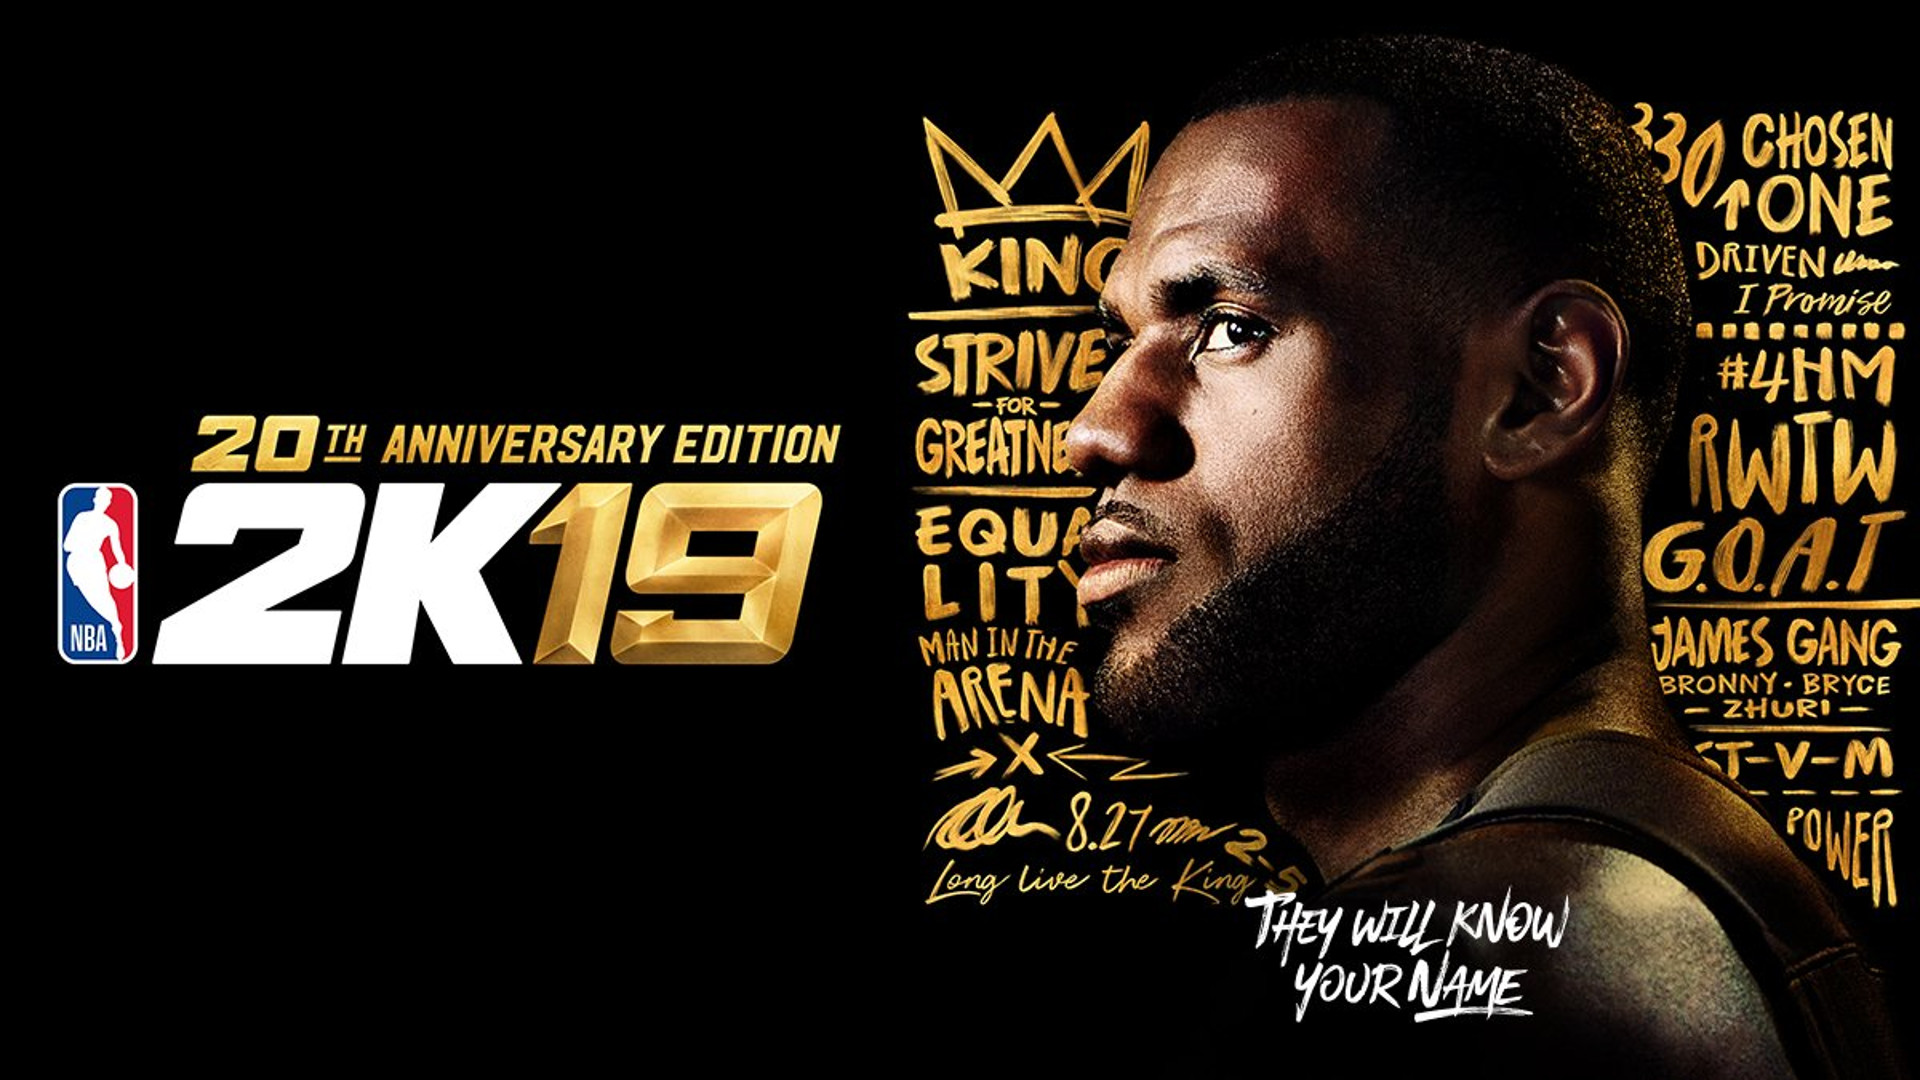 'NBA 2K19' player ratings: Overall numbers announced ahead of release date